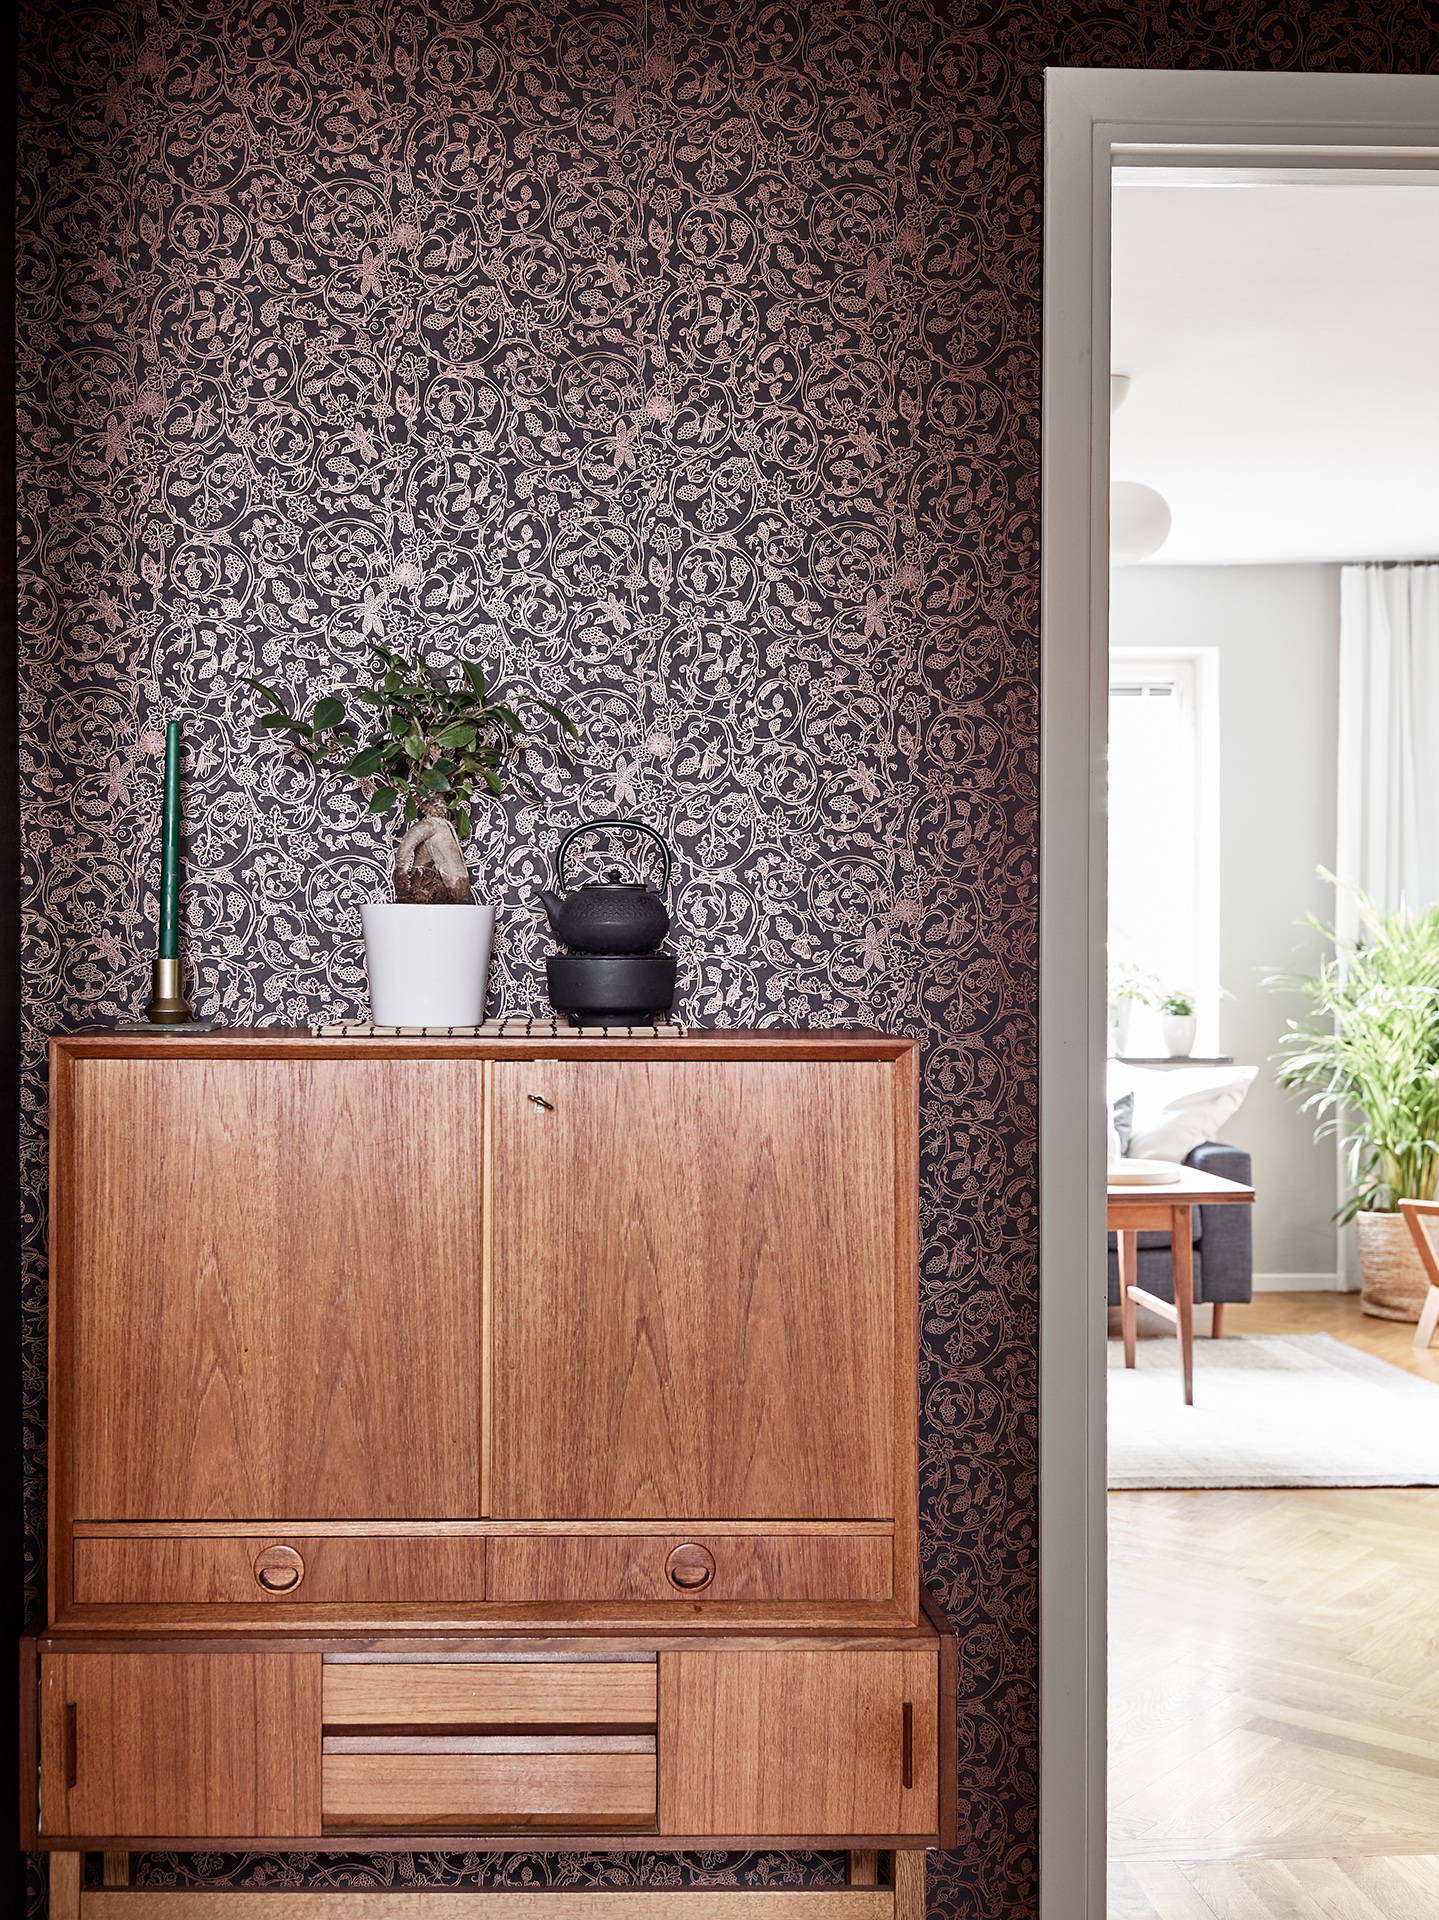 In Colour Burgundy Charming Apartment In Sweden - Sleek-and-beautiful-apartment-in-sweden